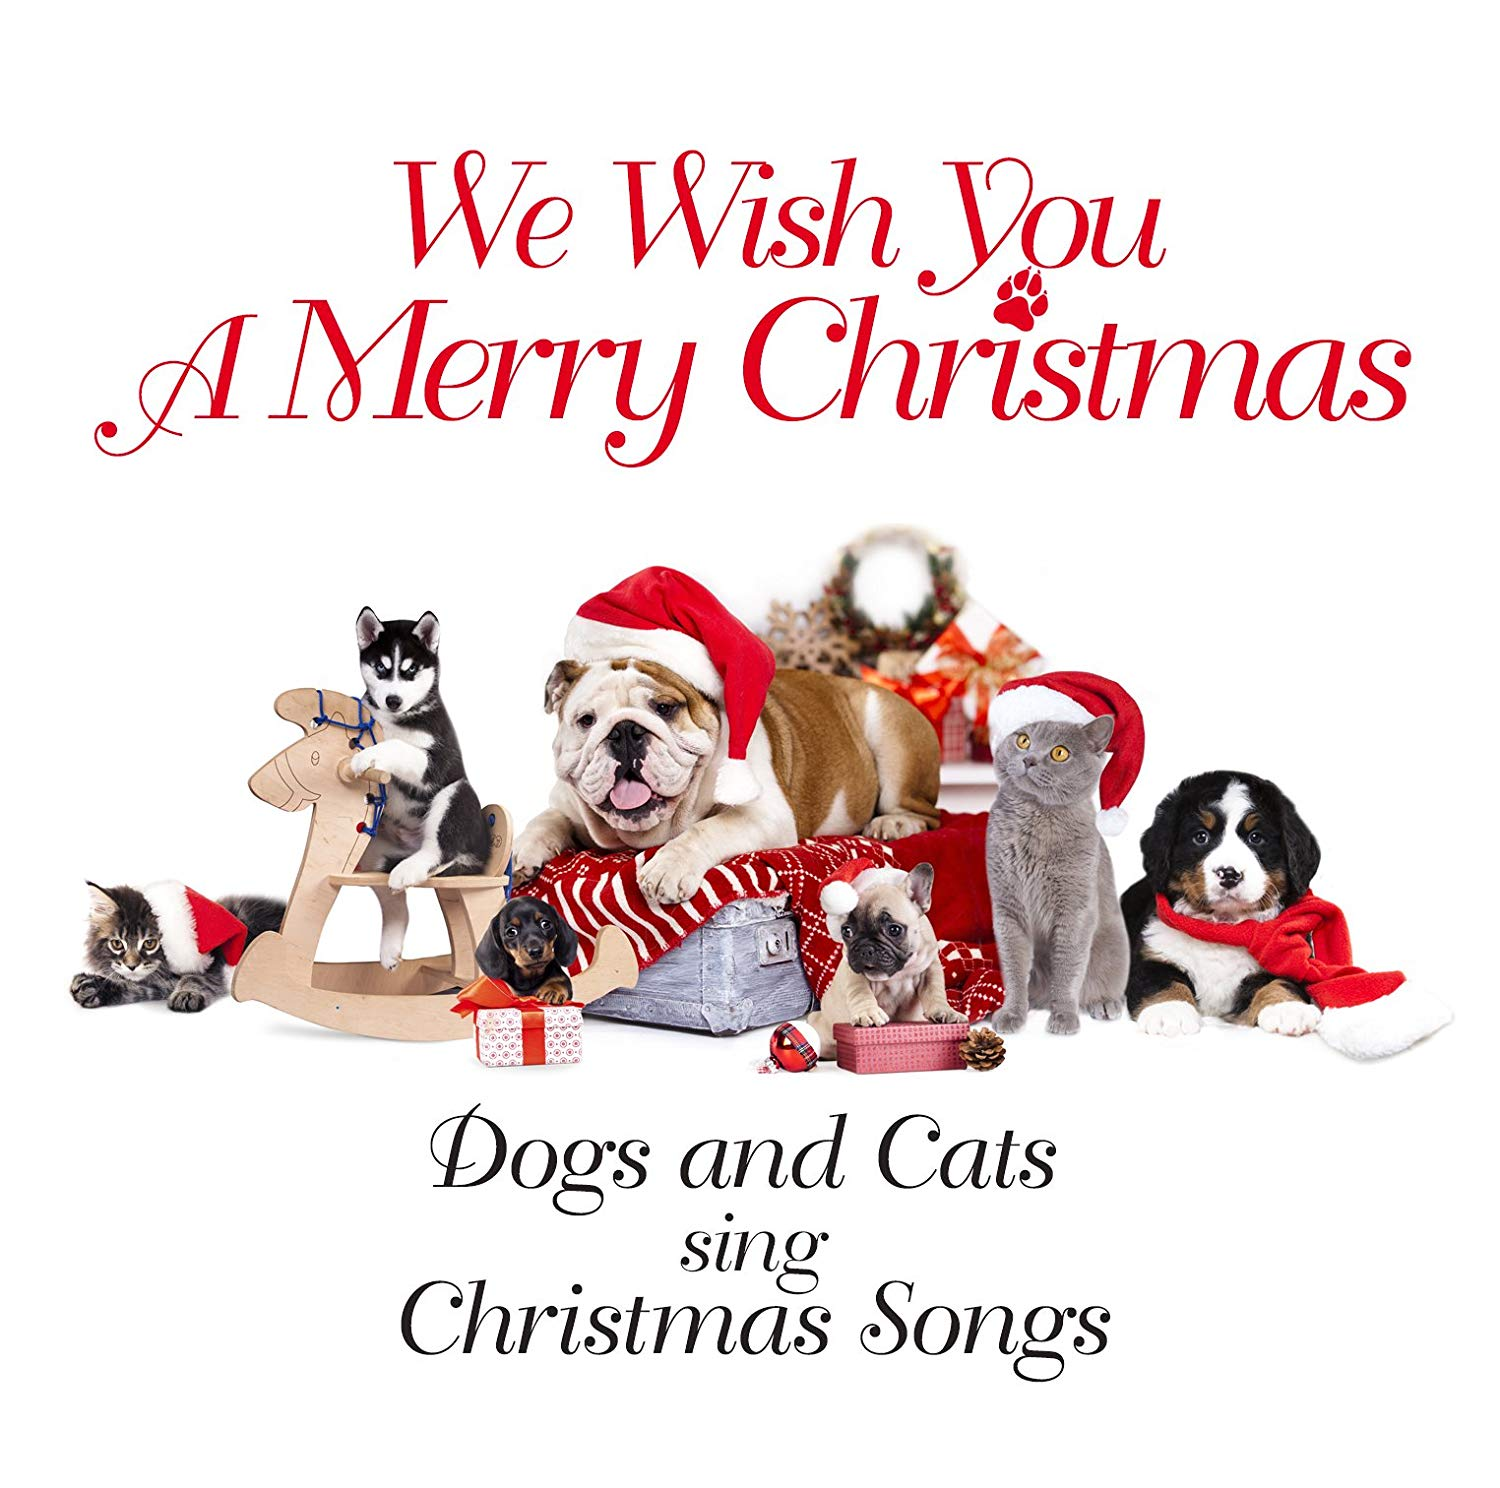 Dogs,Cats Dogs & Cats. We Wish You A Merry Christmas